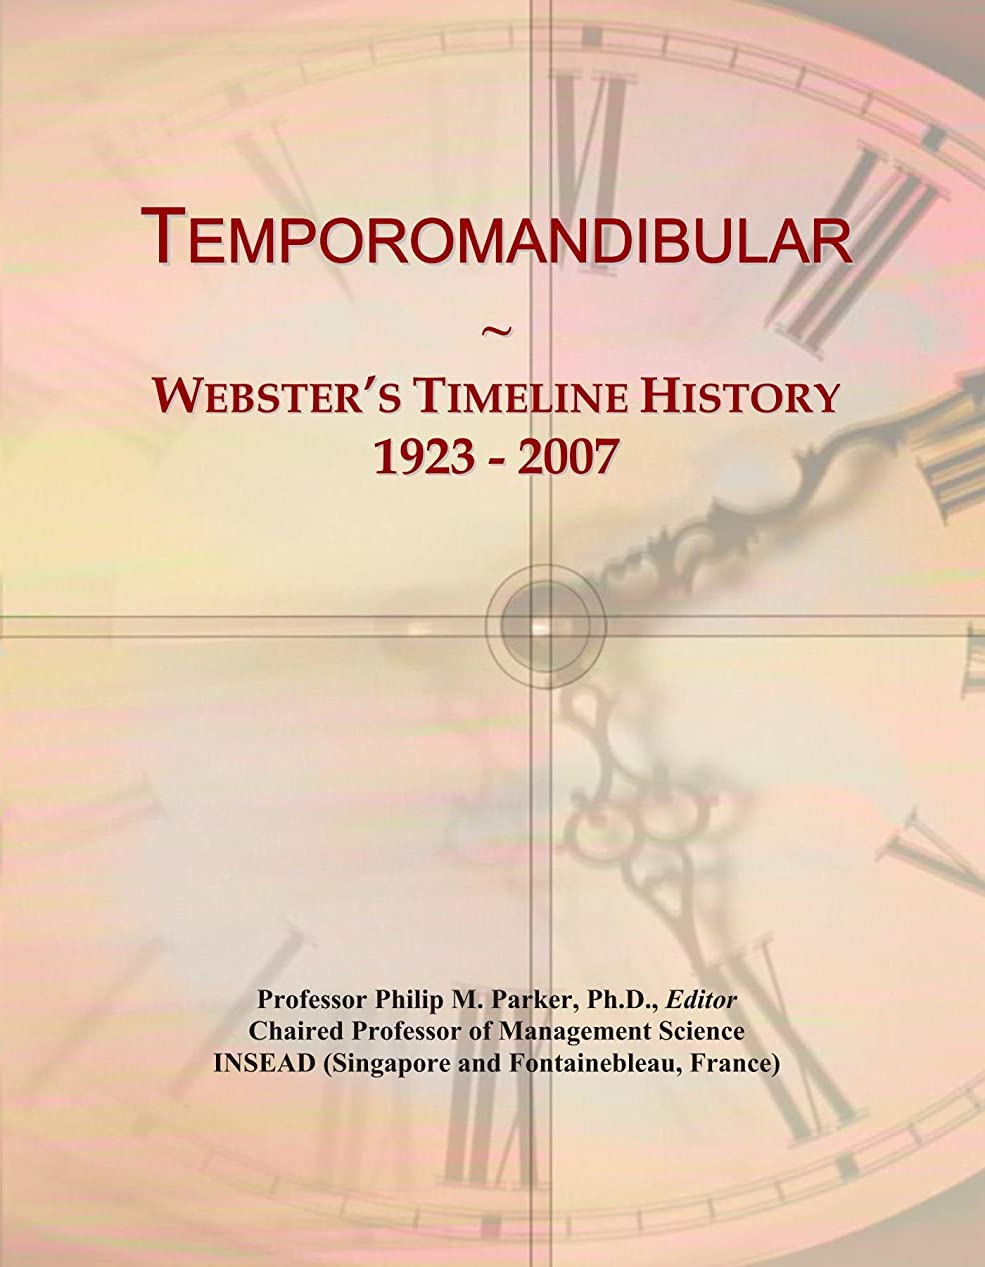 卒業記念アルバム私たち自身歌Temporomandibular: Webster's Timeline History, 1923 - 2007